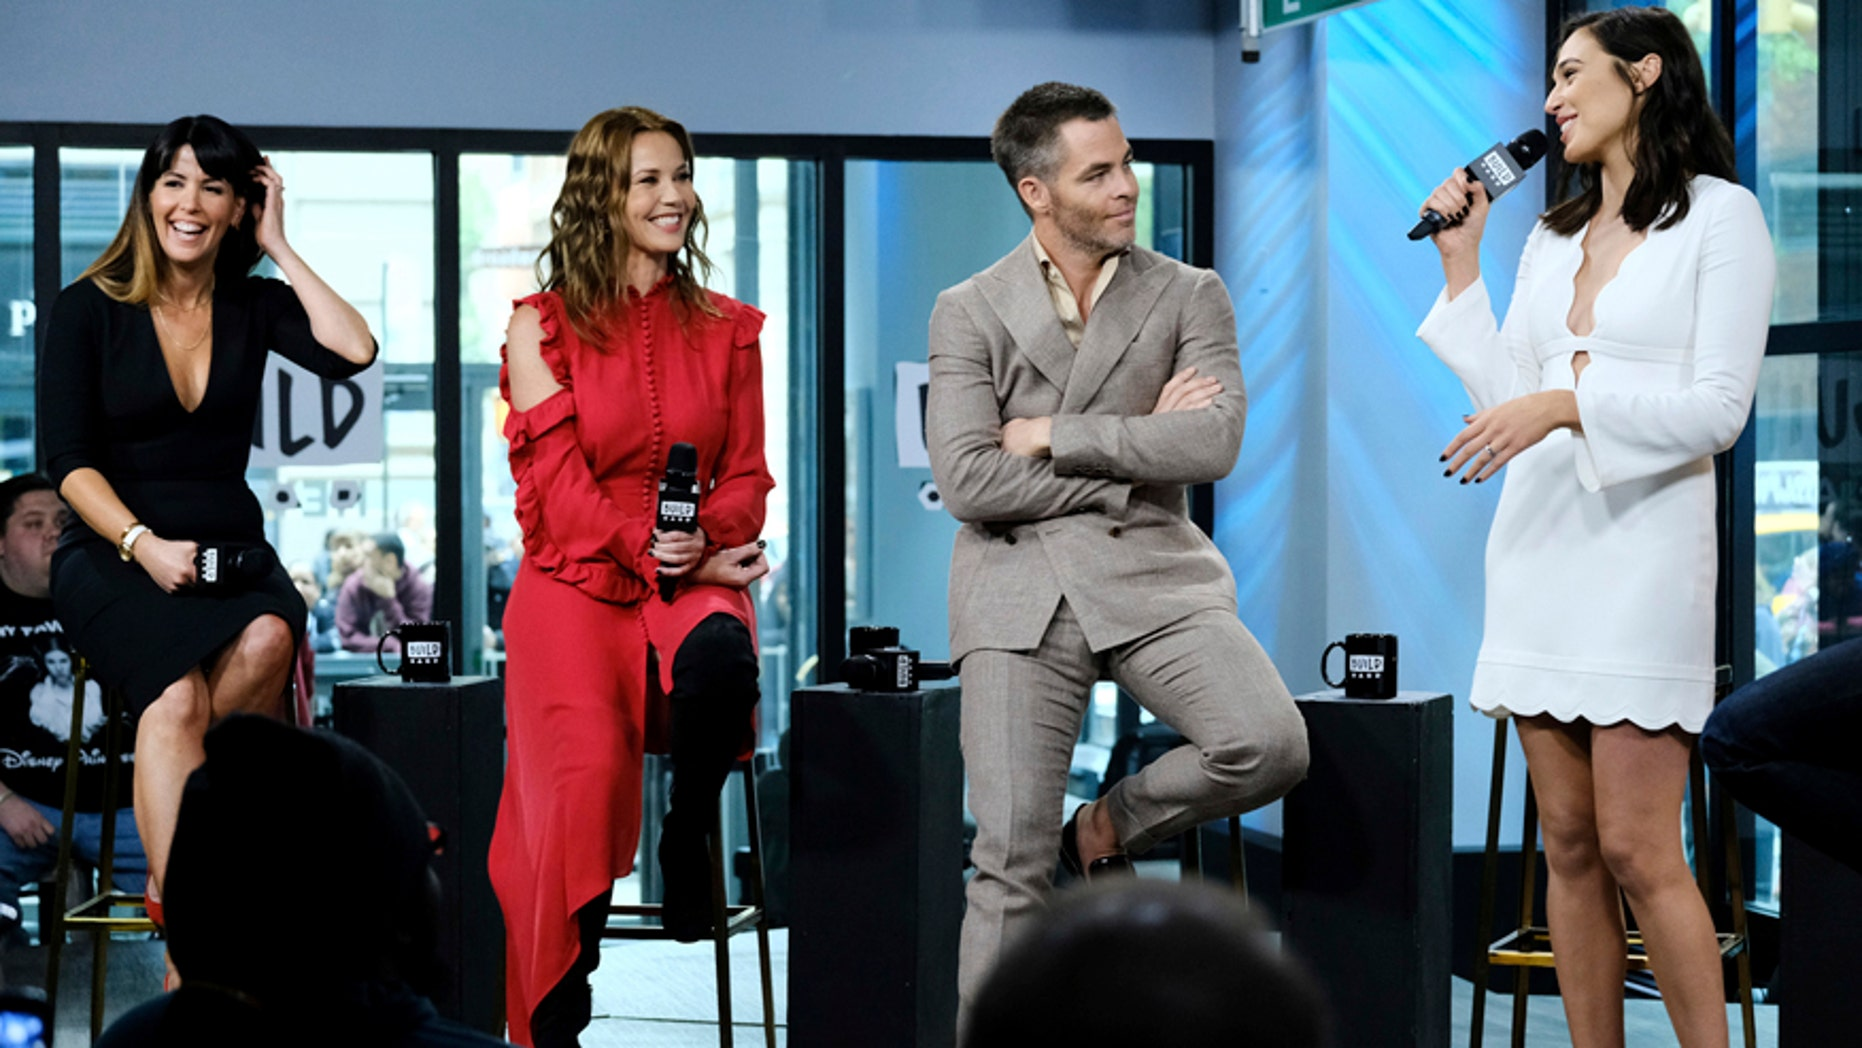 """Director Patty Jenkins, from left, and actors Connie Nielsen, Chris Pine and Gal Gadot participate in the BUILD Speaker Series to discuss the film, """"Wonder Woman"""" at AOL Studios on Tuesday, May 23, 2017, in New York."""